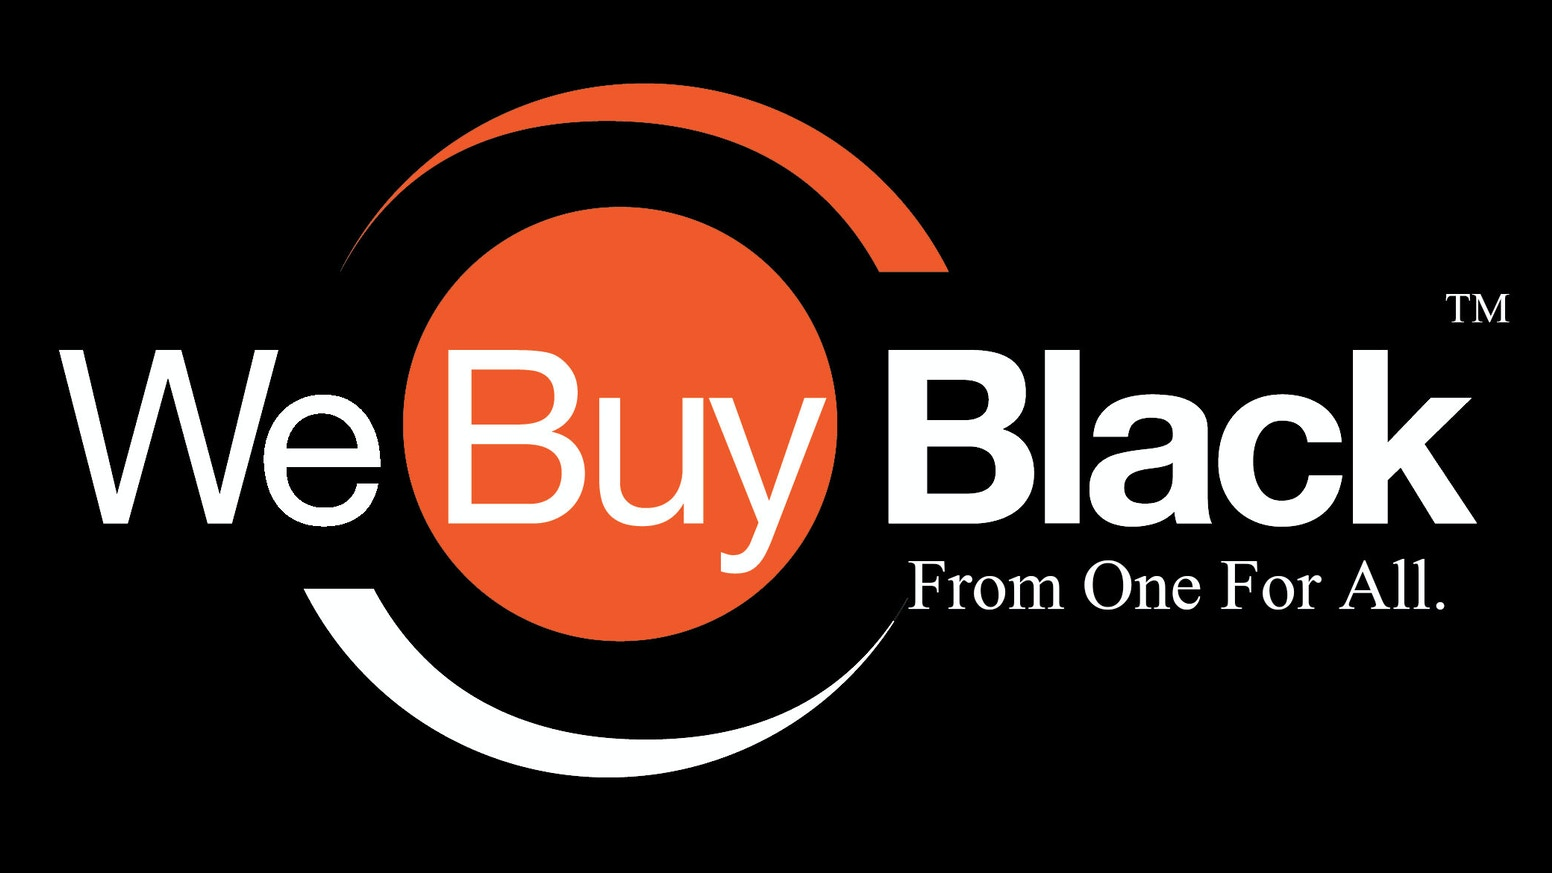 WeBuyBlack.com is an online marketplace for all Black sellers to display their products for sale.